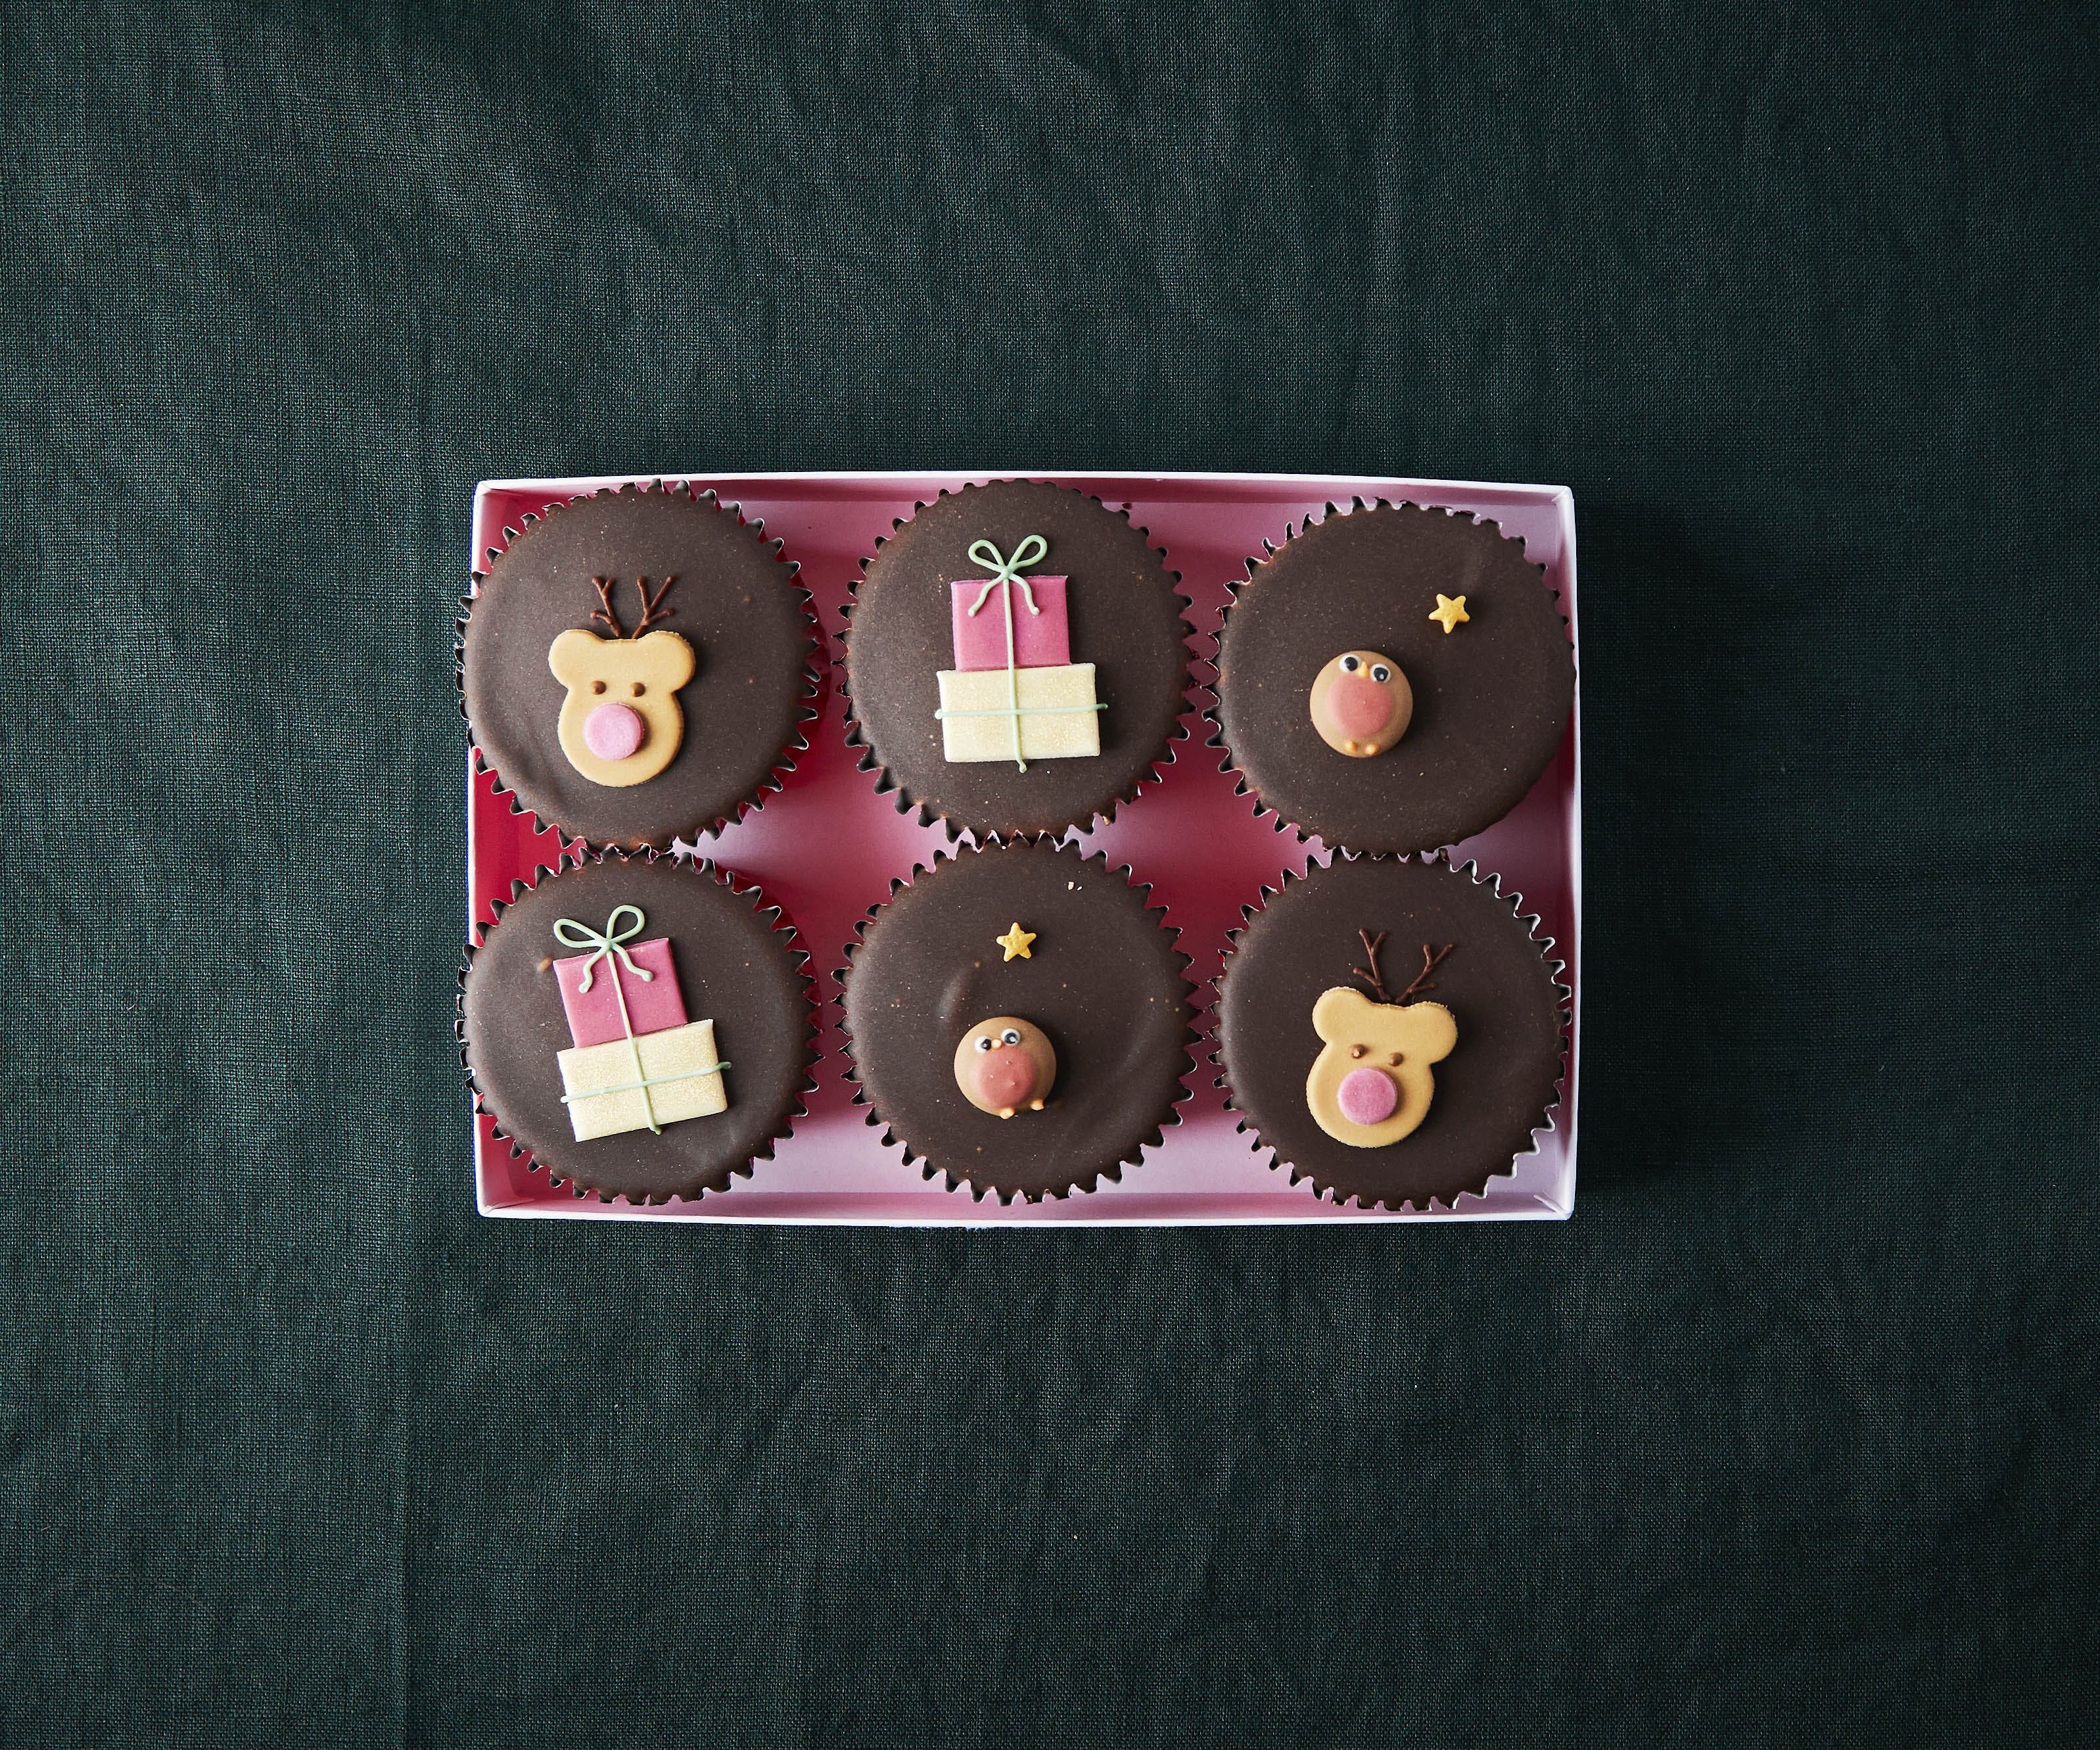 Rudolph Chocolate Fairy Cakes